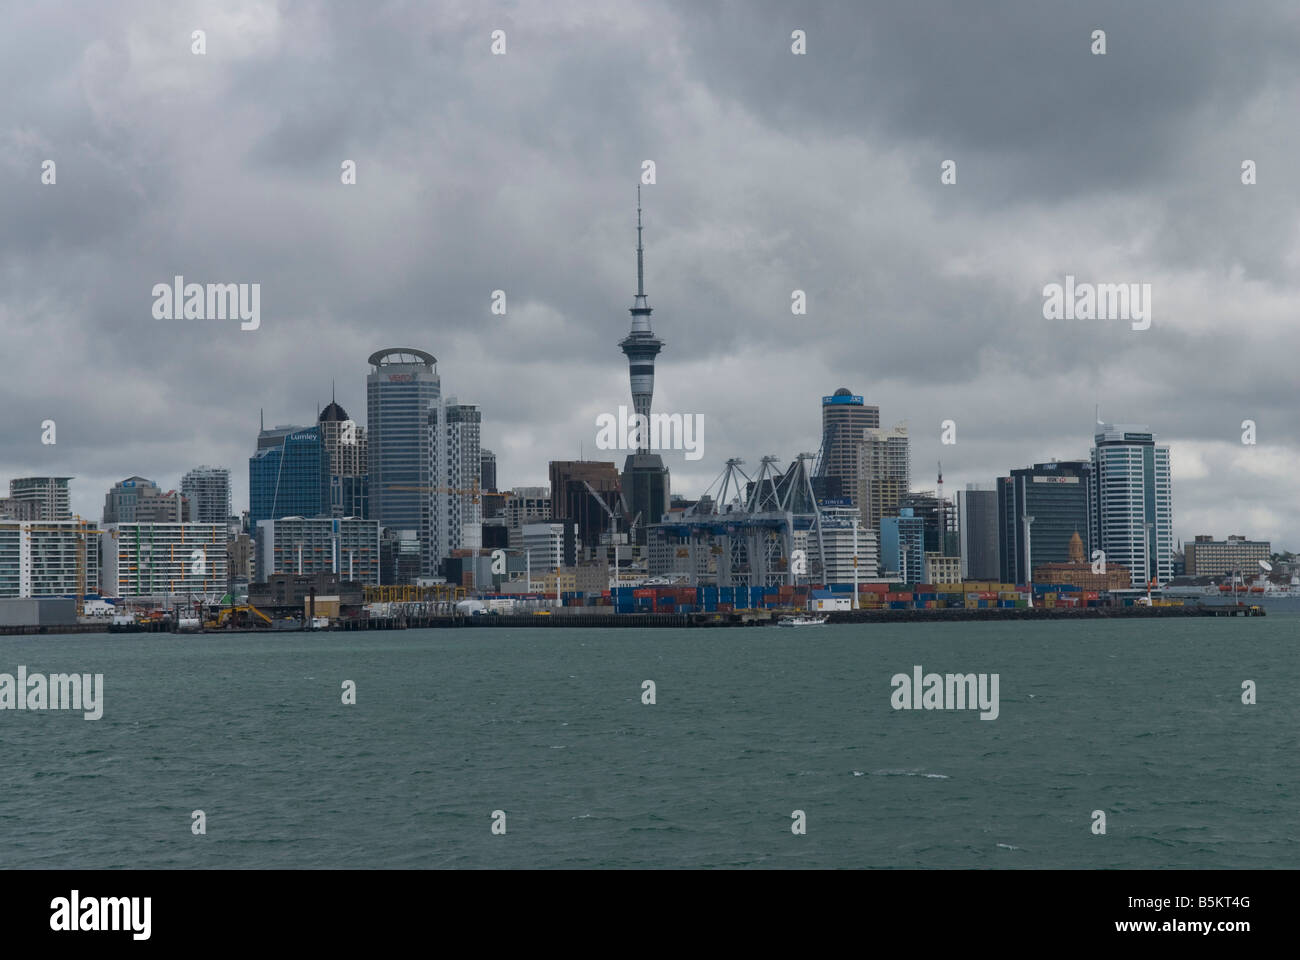 Auckland skyline seen from the harbour. - Stock Image